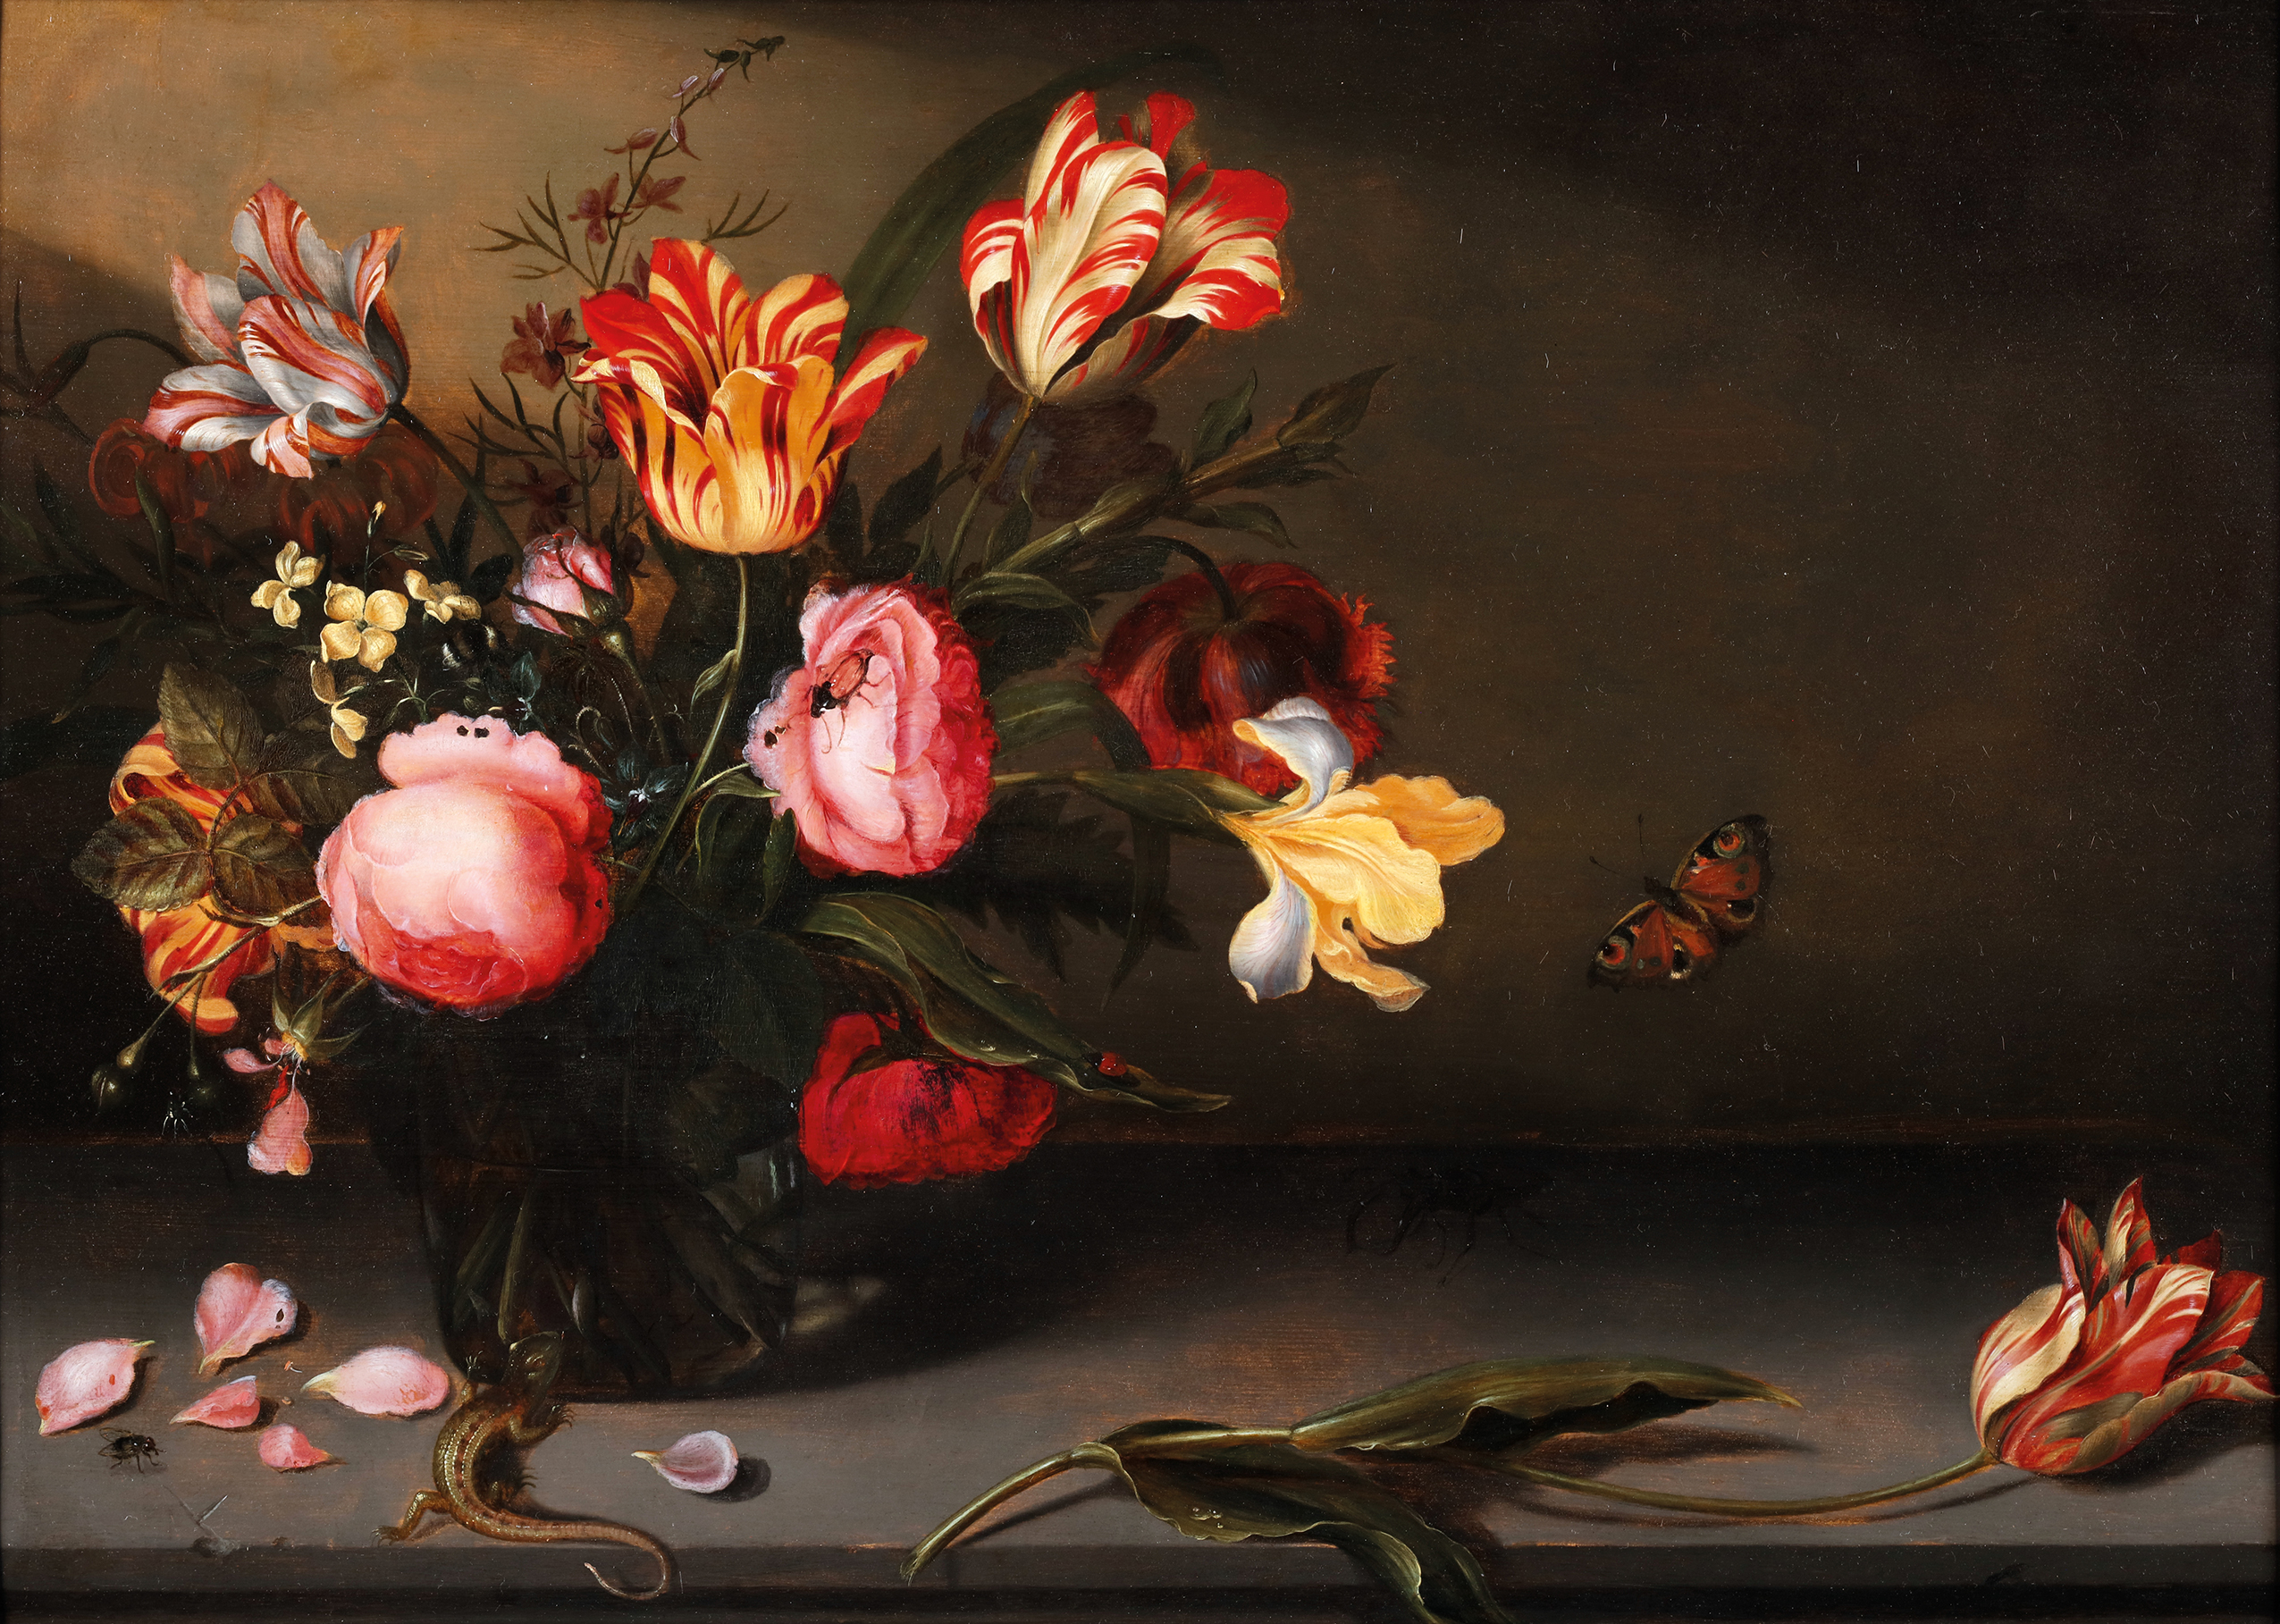 Still life with tulips & roses in a glass vase surrounded by insects, lizards, a fly and a big black beetle